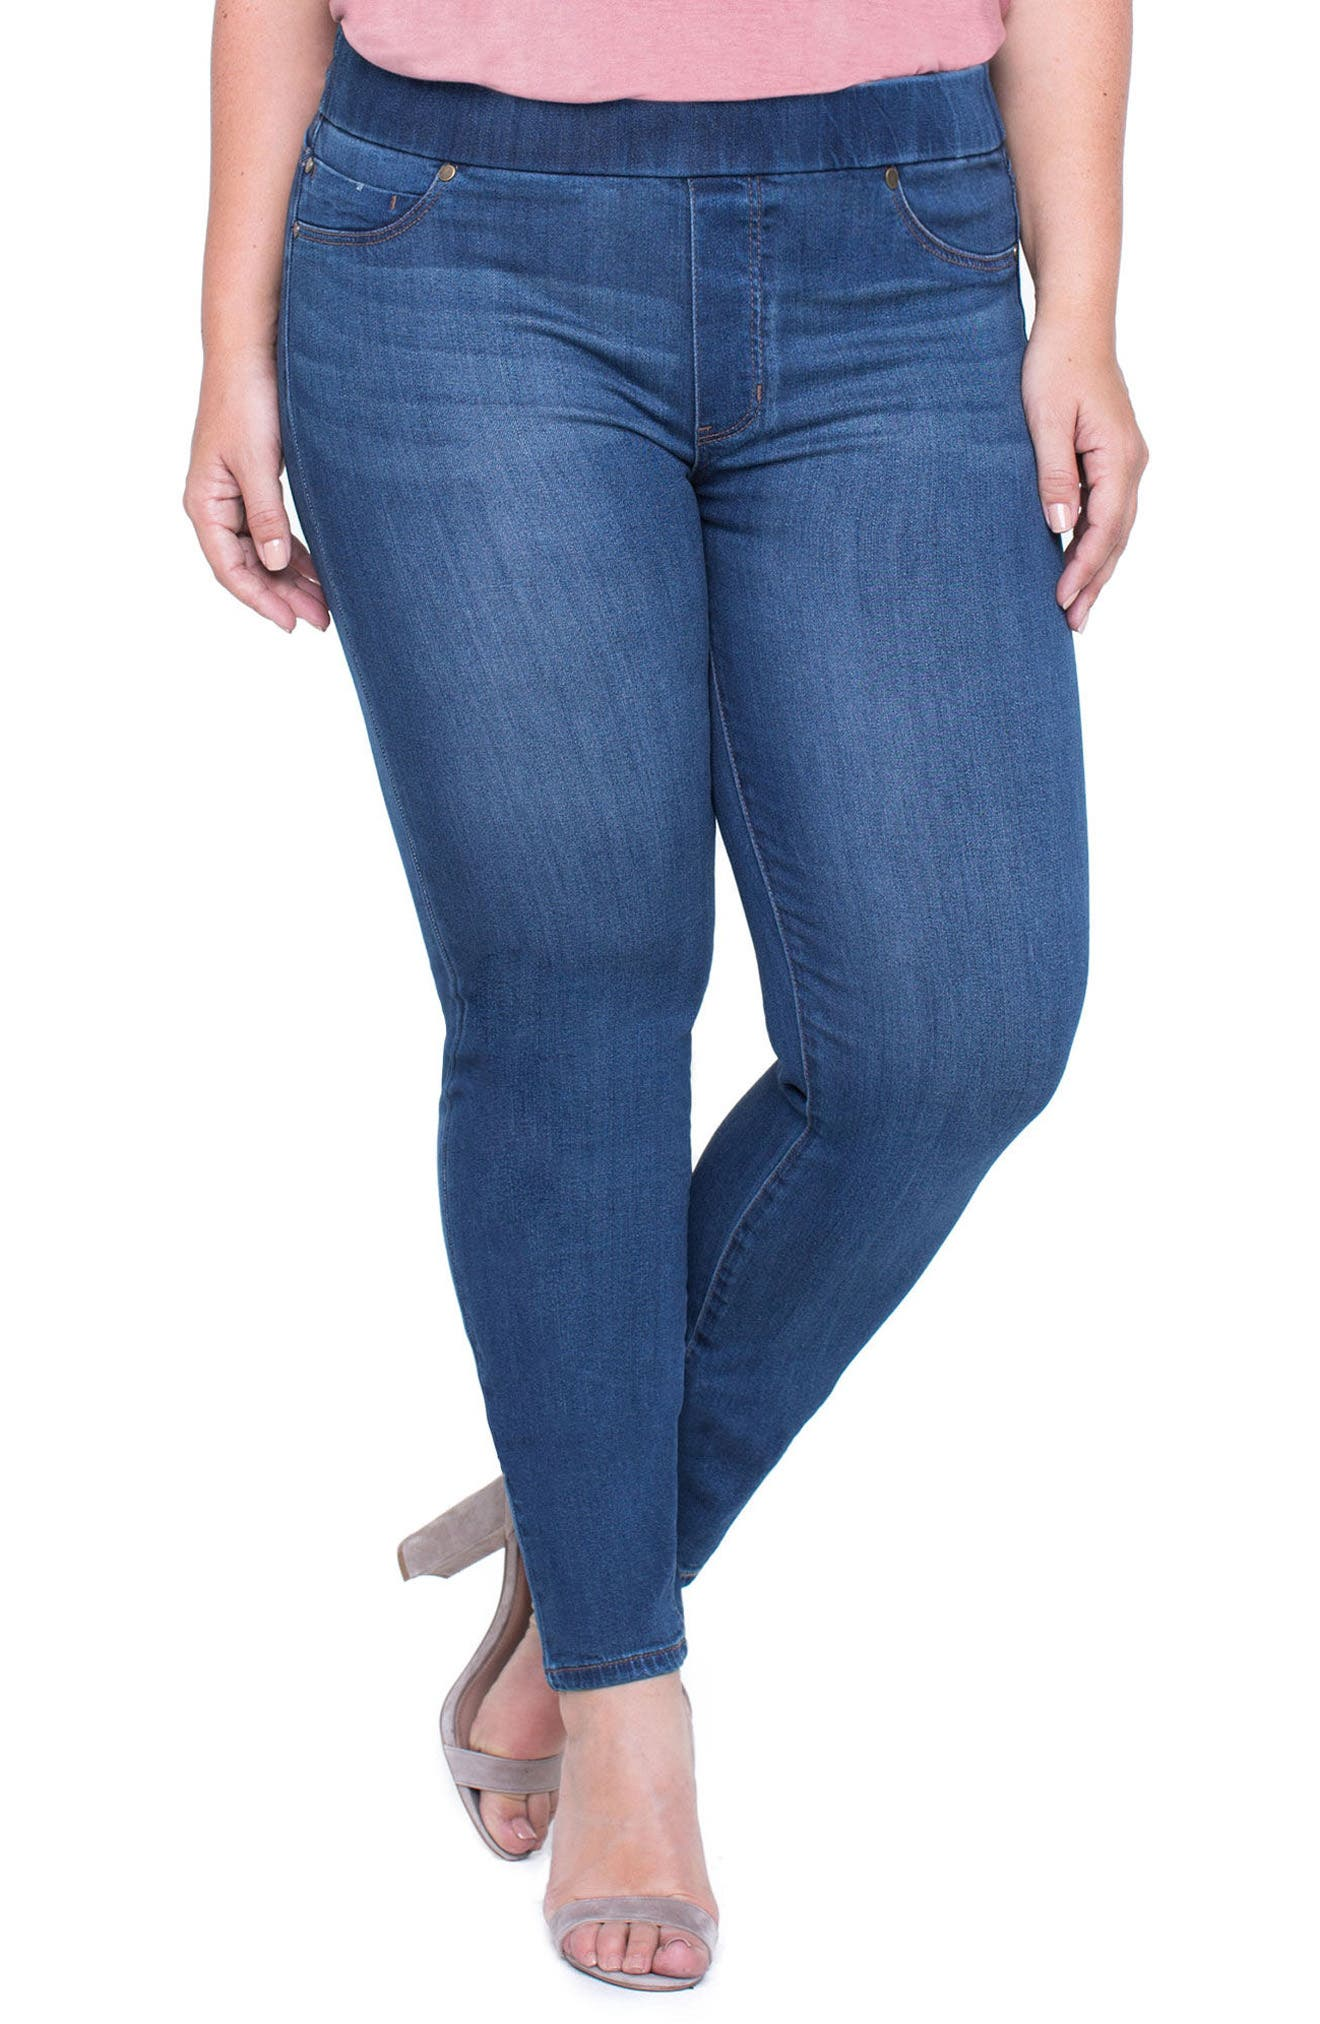 Main Image - Liverpool Jeans Company Sienna Knit Denim Leggings (Plus Size)